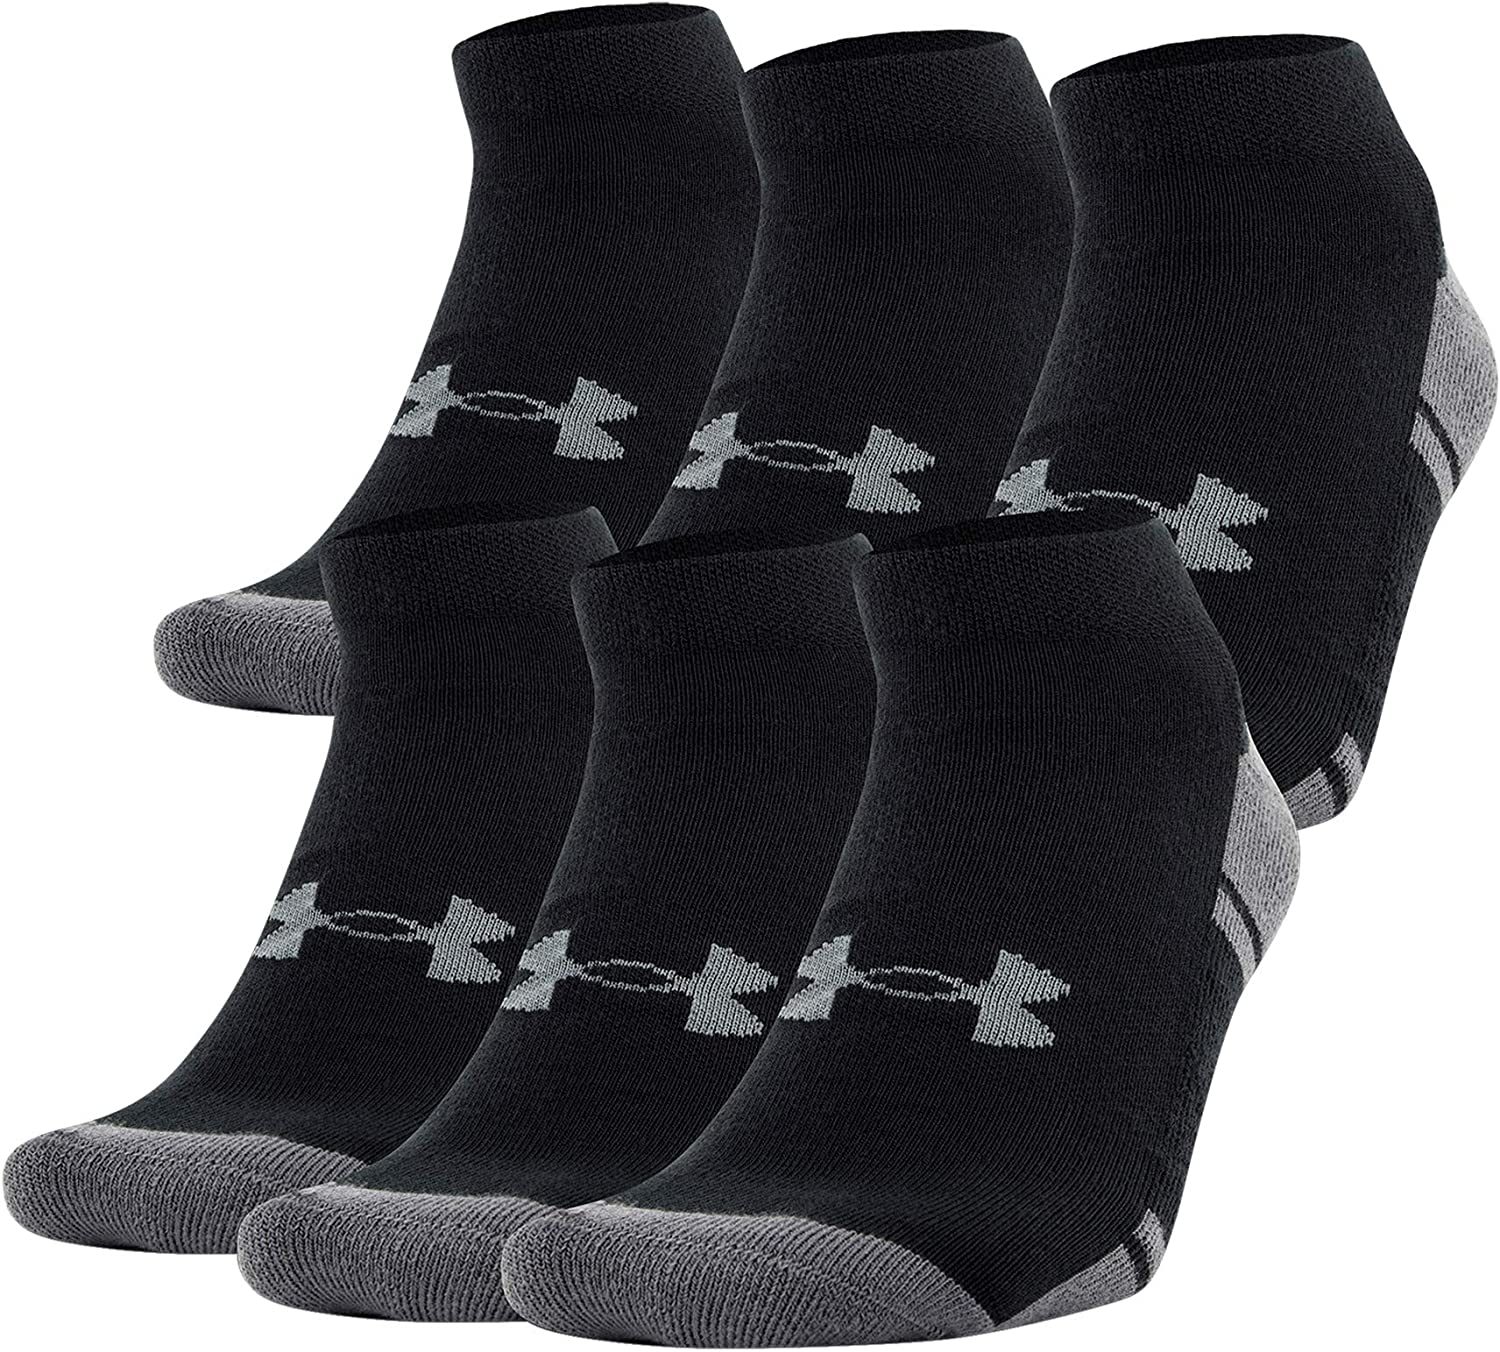 Under Armour unisex-adult Resistor 3.0 Low Cut Socks, 6-pairs